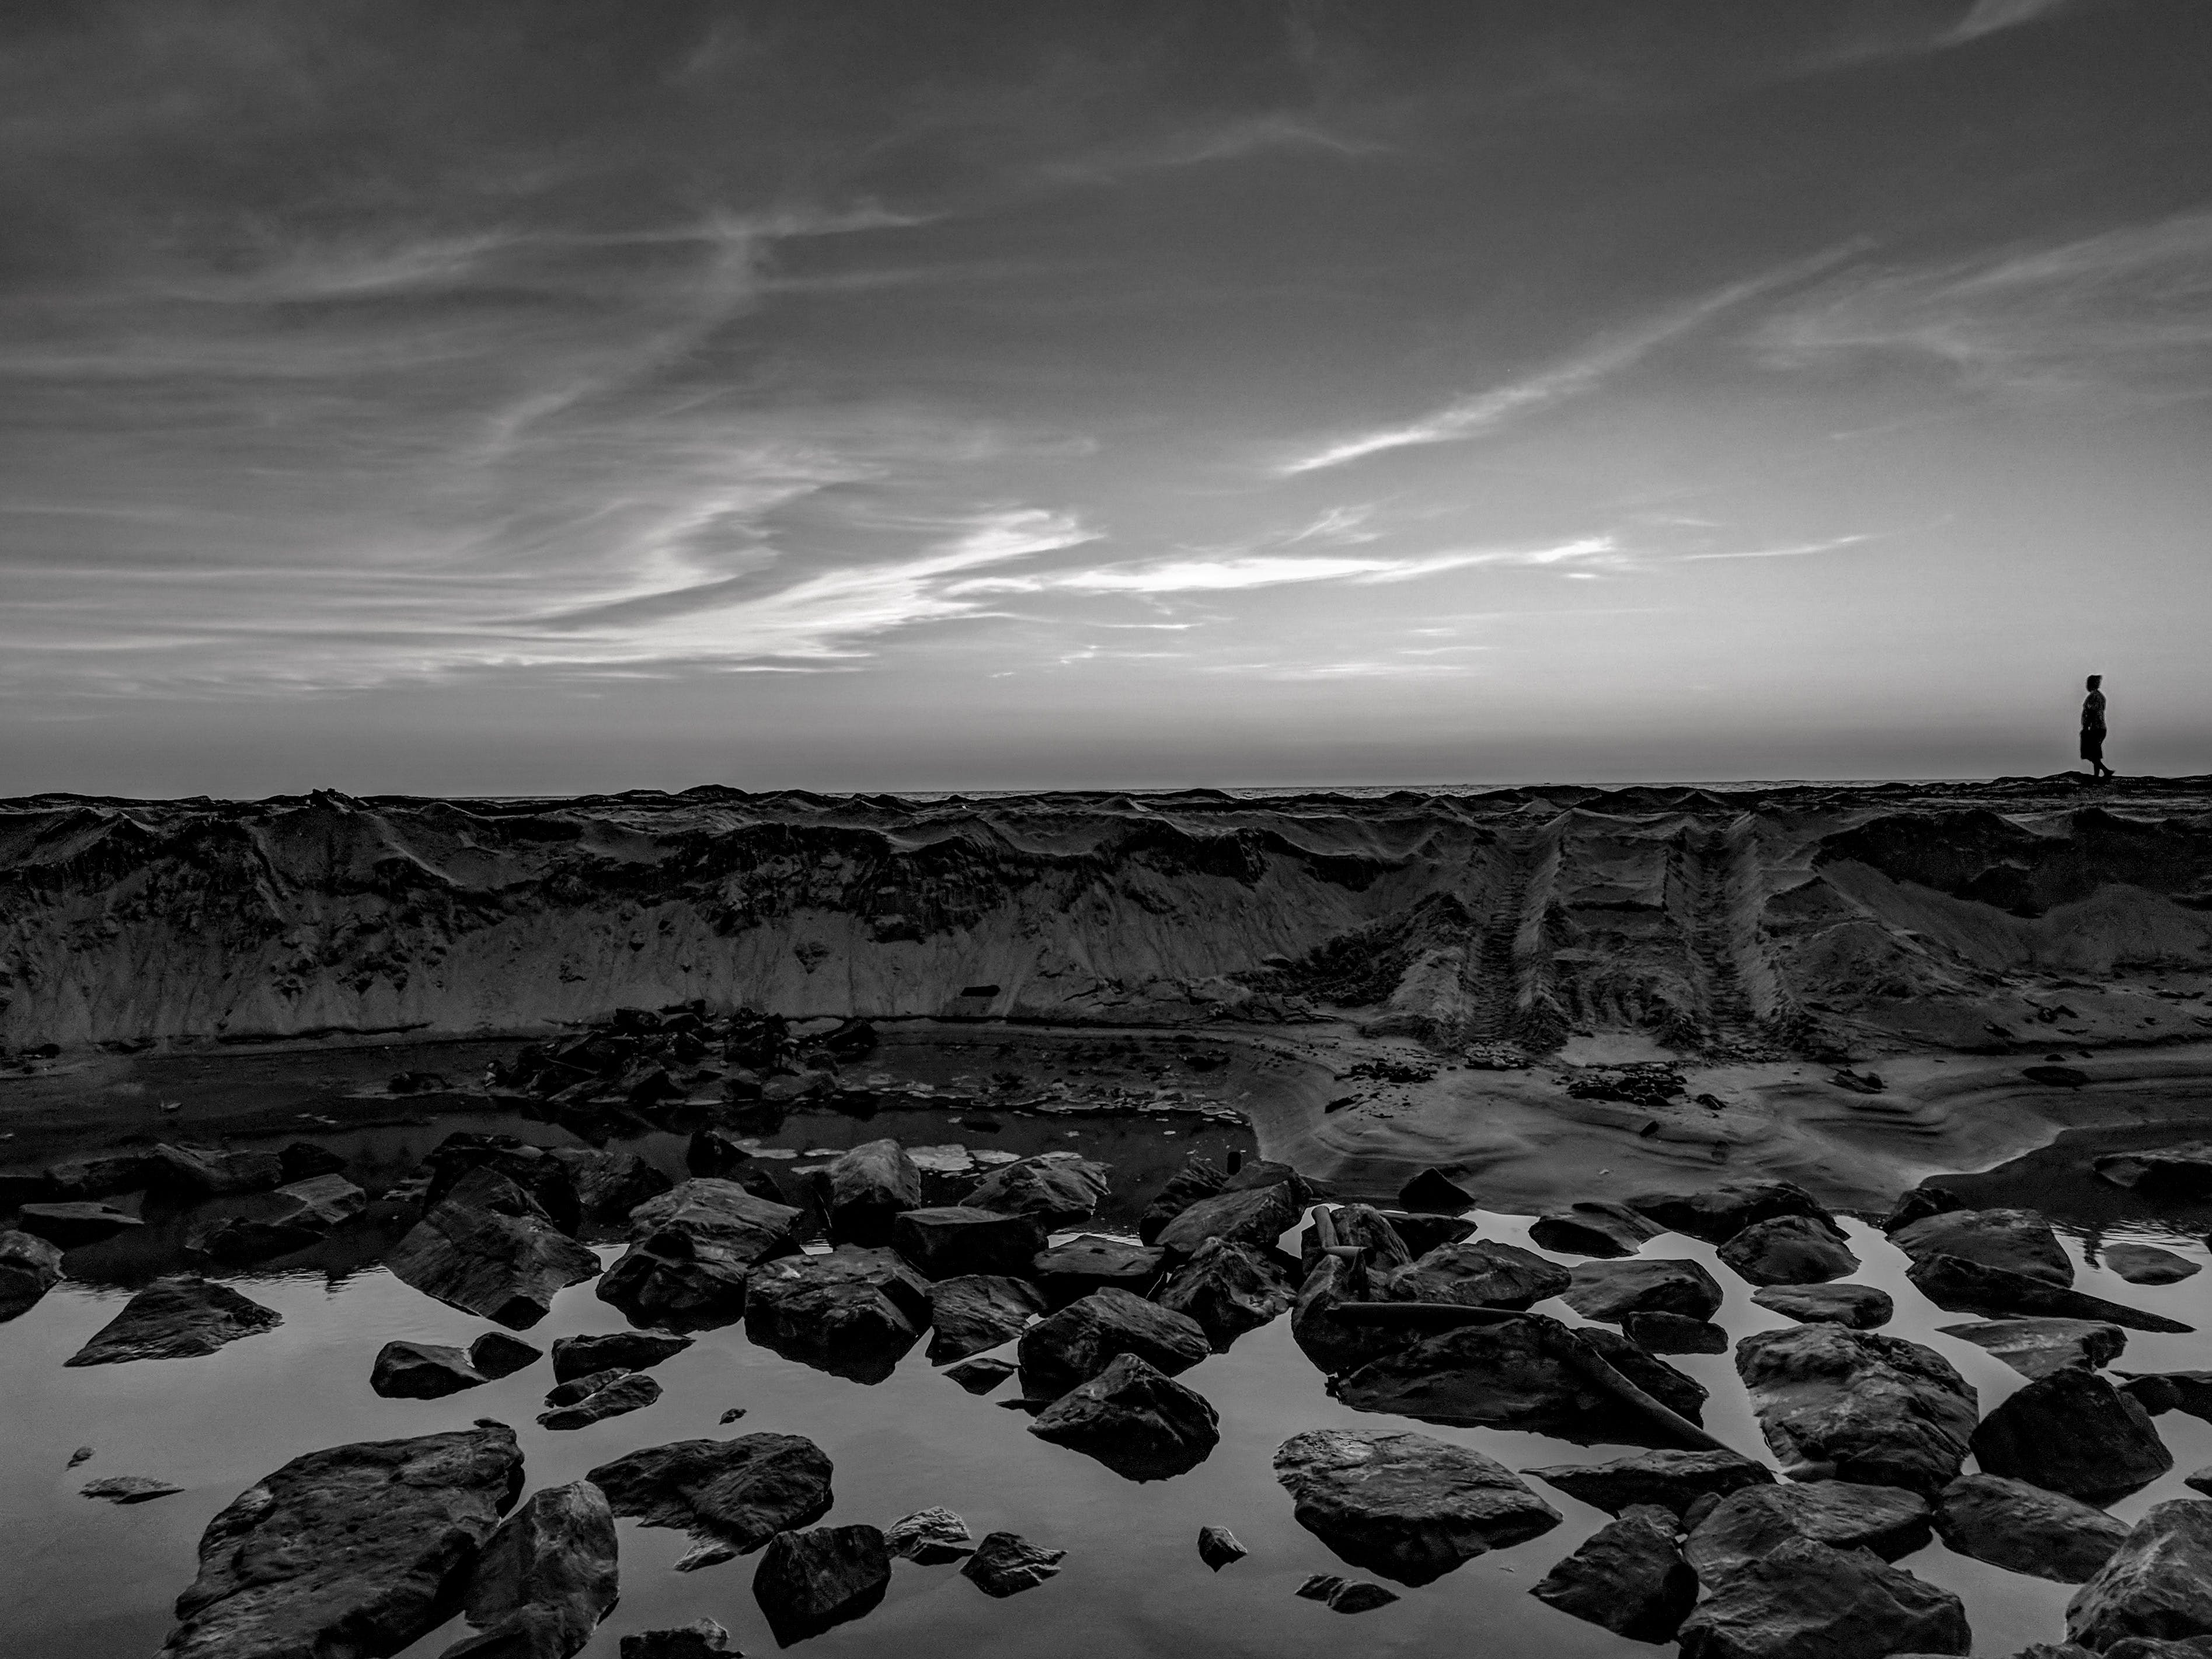 Grayscale Photo Of Person Walking On Rocks